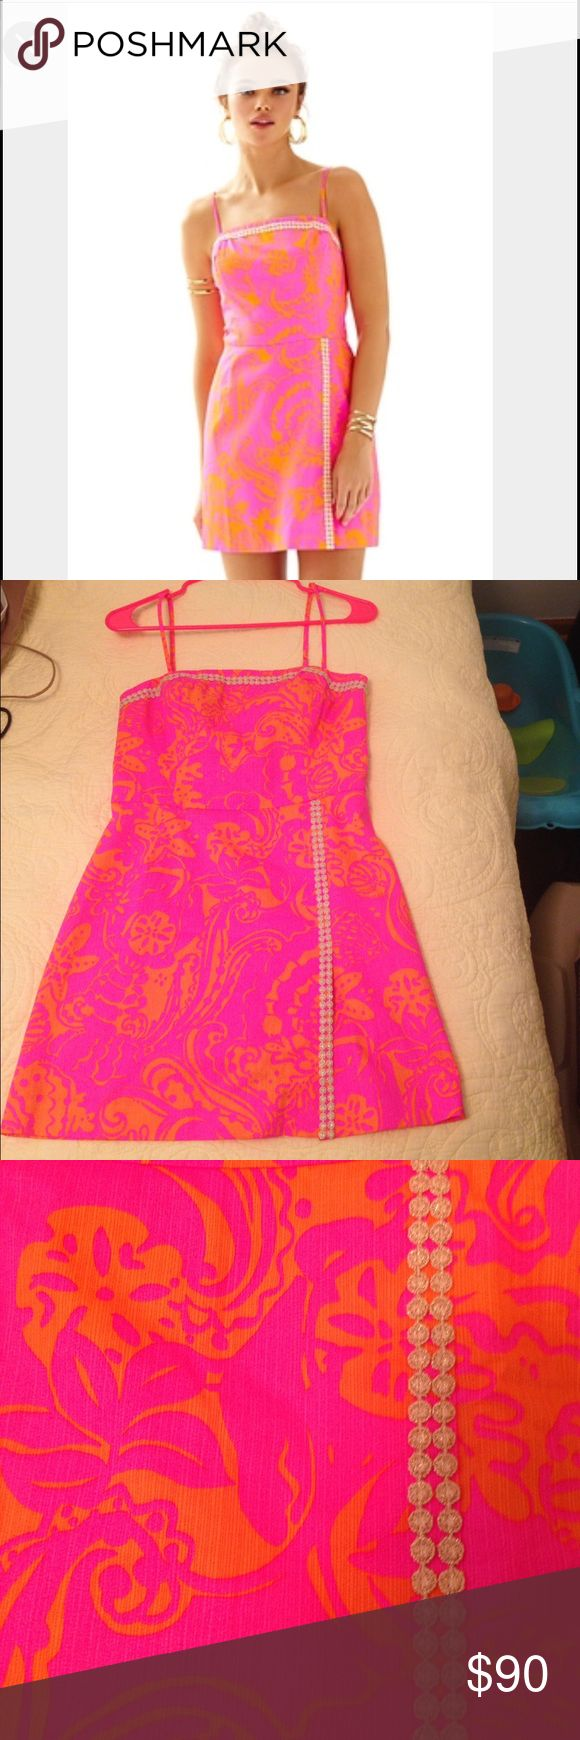 Lilly Pulitzer Jesse Skort Romper I'm usually a size 0 or 2 but the website and reviews said runs small and to get size 4. Fit like a glove! Only worn once. New condition! Willing to trade for other Lilly! Lilly Pulitzer Dresses Mini